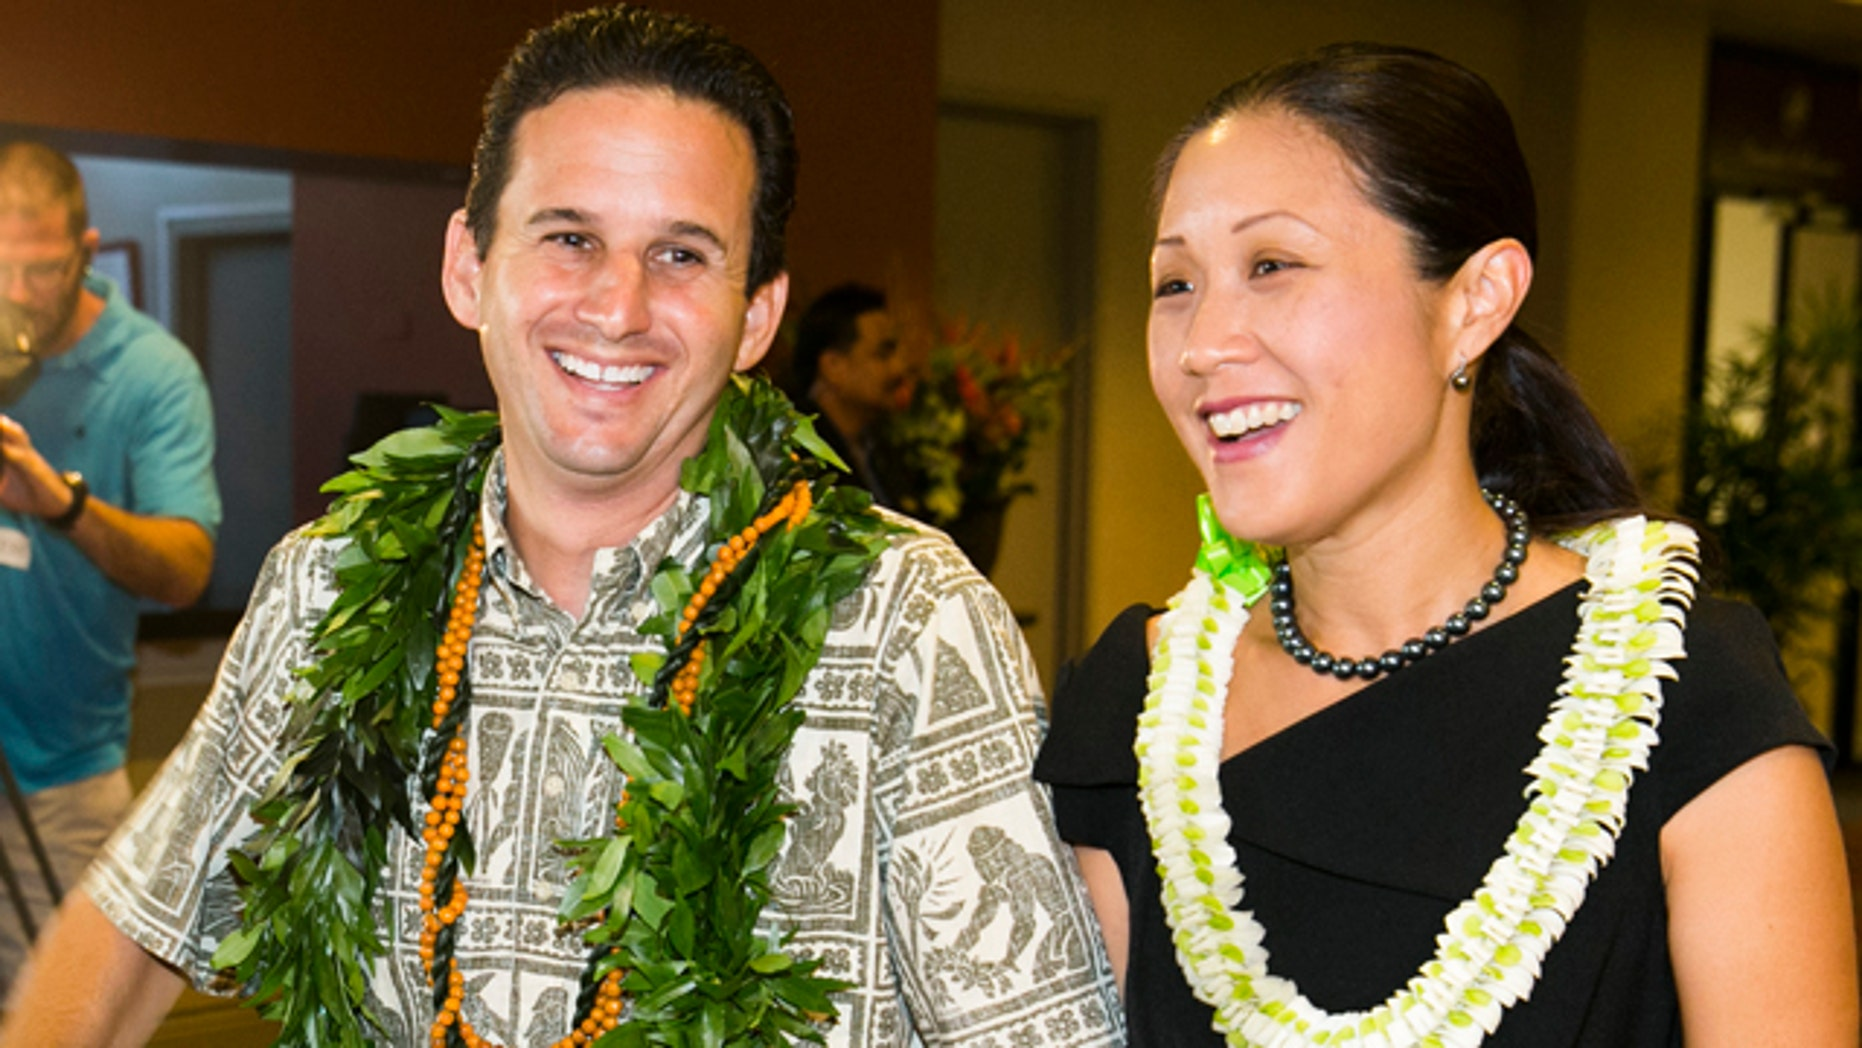 August 10, 2014: US Sen. Brian Schatz, left, and Linda Kwok Schatz attend the Democratic Unity Breakfast in Honolulu.  The breakfast is traditionally held after Hawaii elections and is attended by both winners as well as losers.  (AP Photo/Marco Garcia)